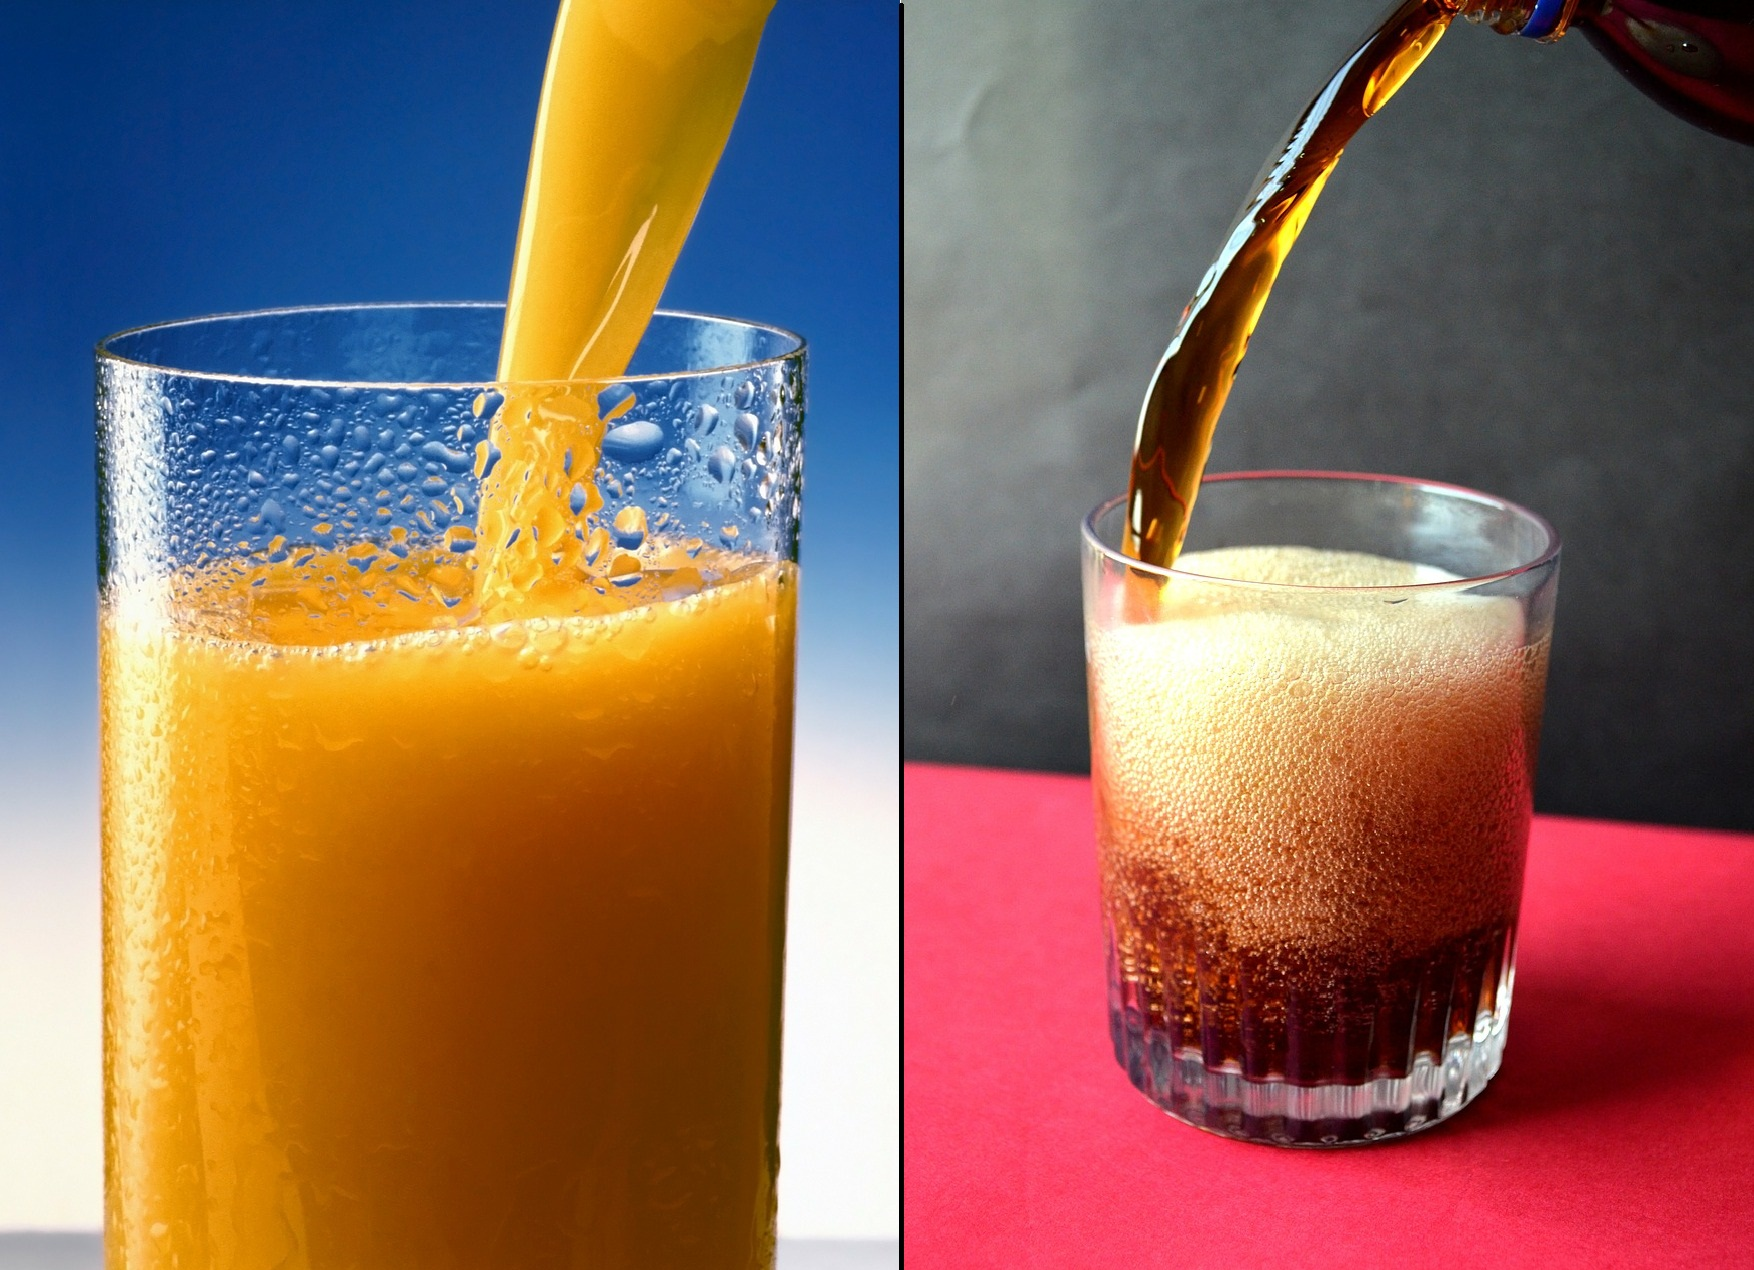 Shocking Fruit Juices Are As Unhealthy As Aerated Drinks